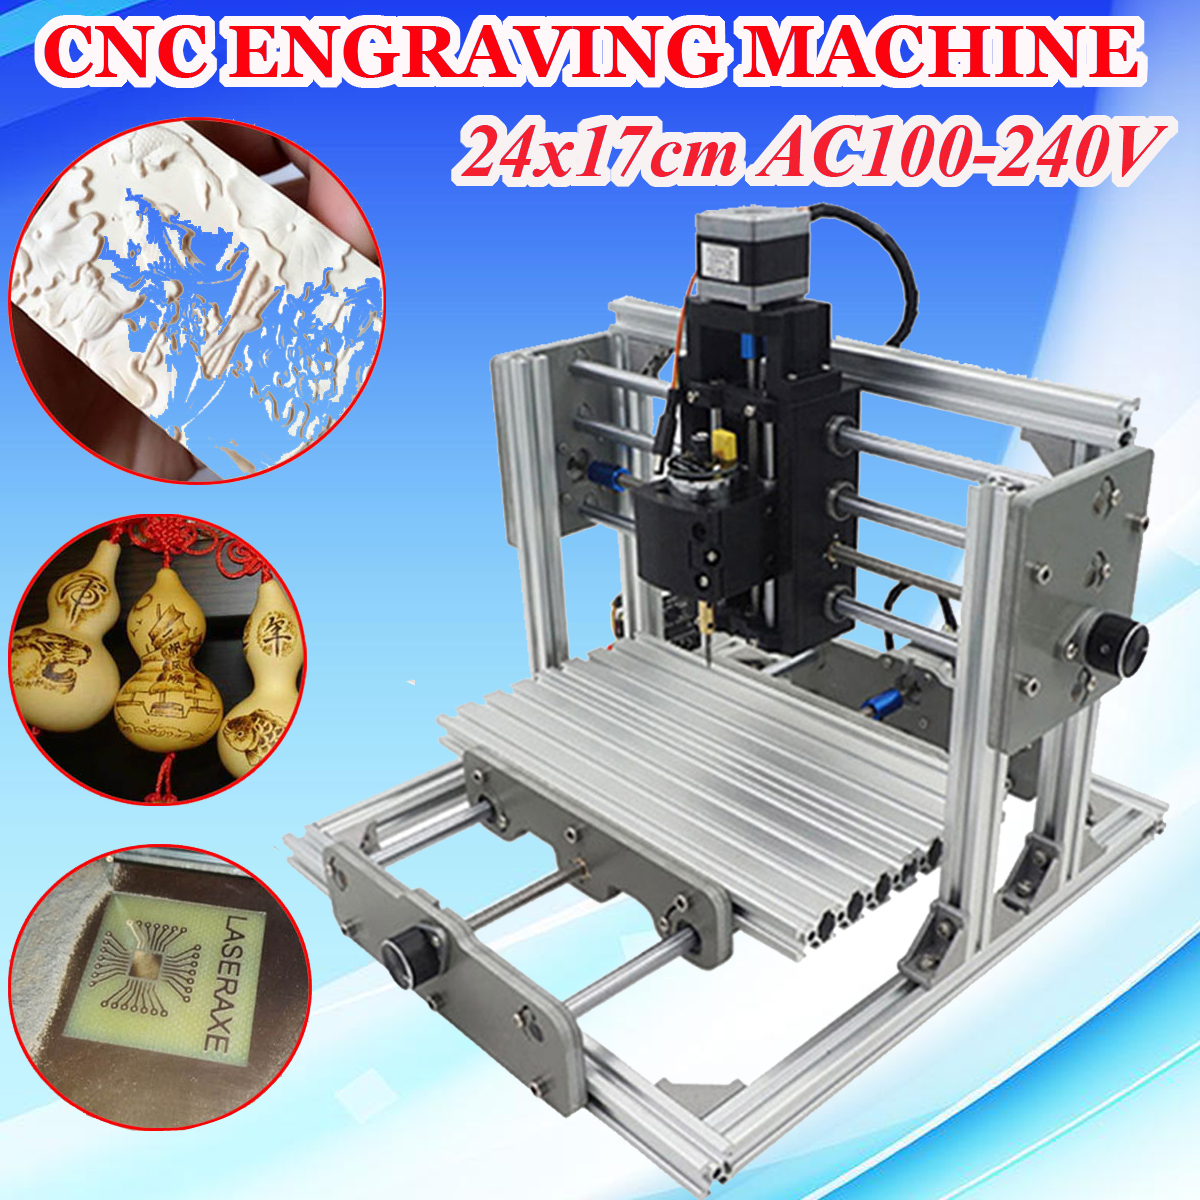 цена на DIY CNC Engraving Milling Machine Assembly Kit Mini 3 Axis PCB Milling Machine Wood Router Laser Engraver Working Area 24x17cm